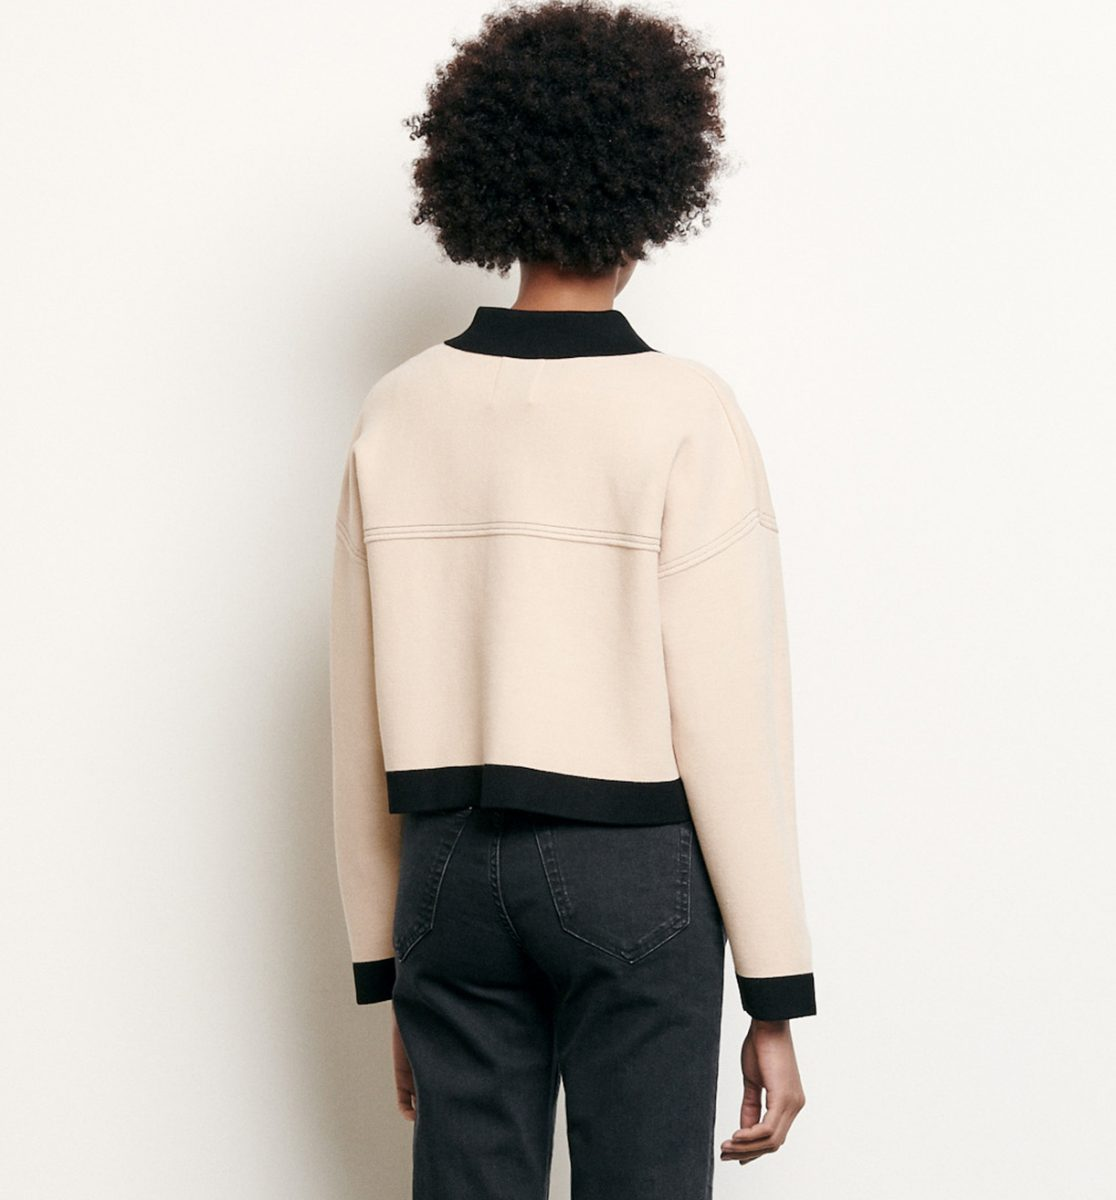 CROPPED CARDIGAN WITH TOPSTITCHING